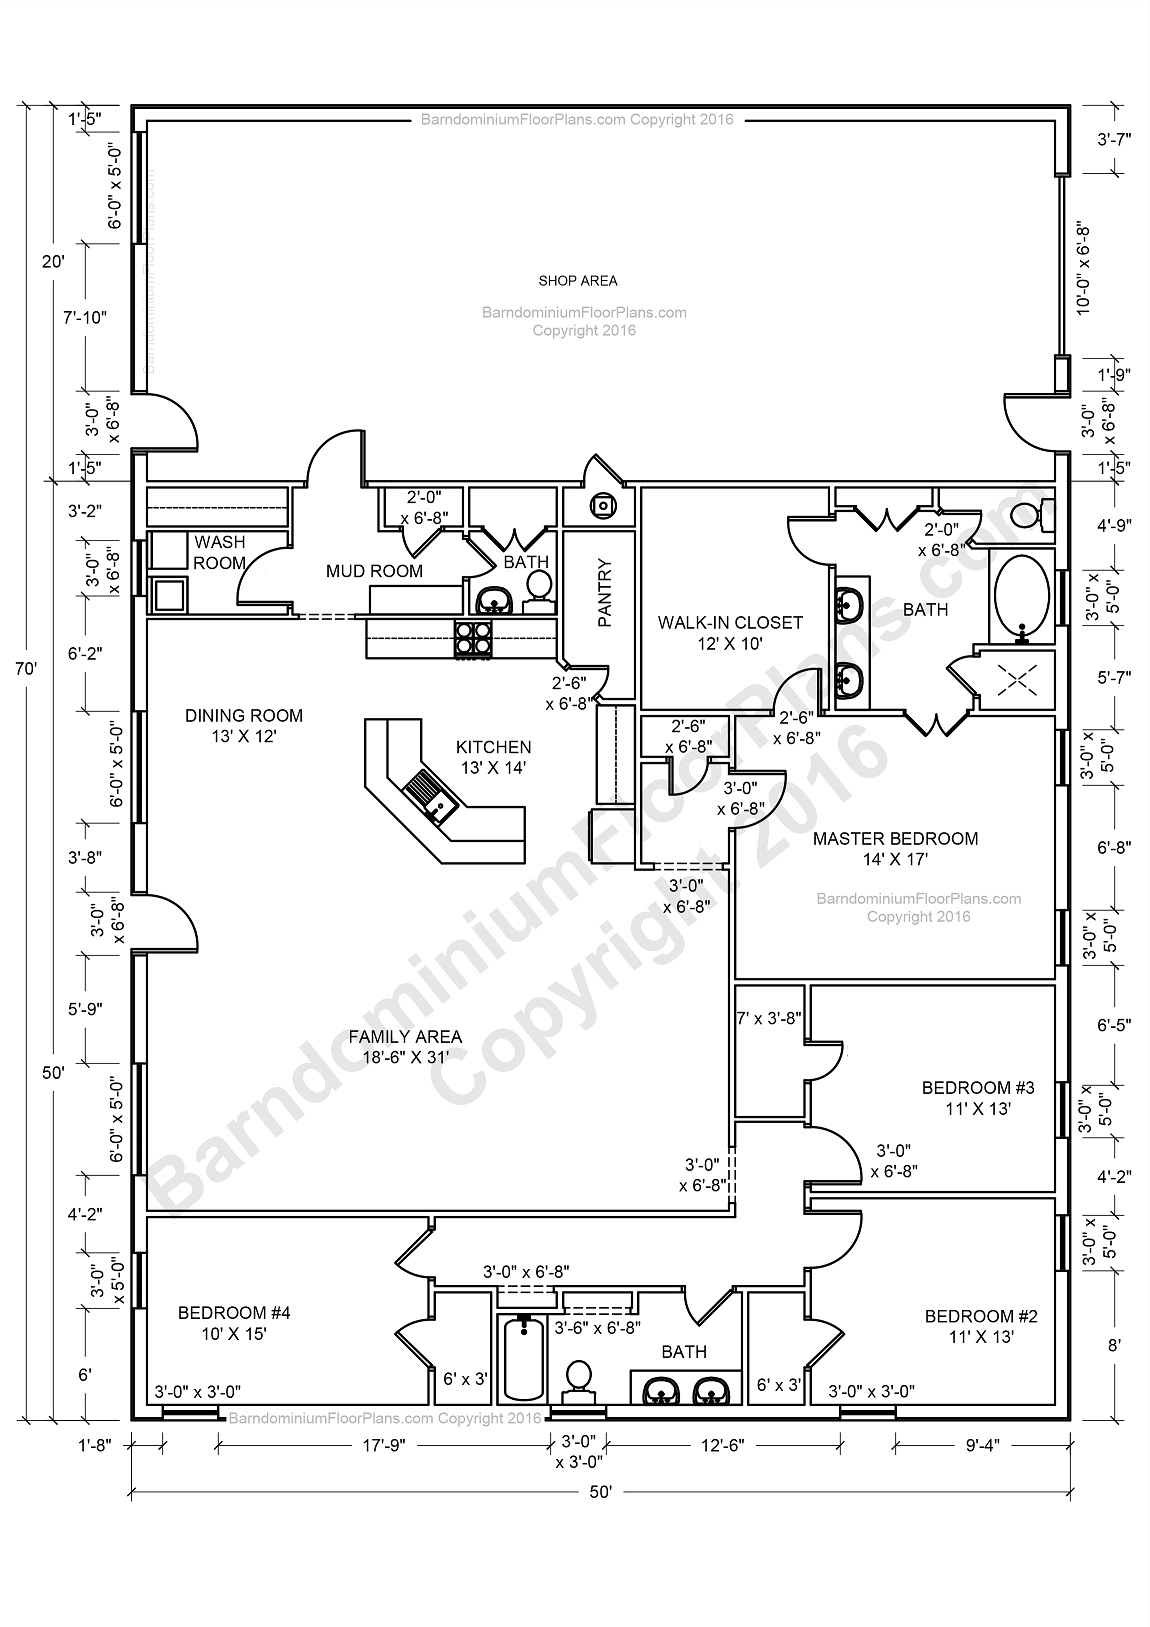 Barndominium floor plans barndominium floor plans 1 800 for Pole barn house floor plans